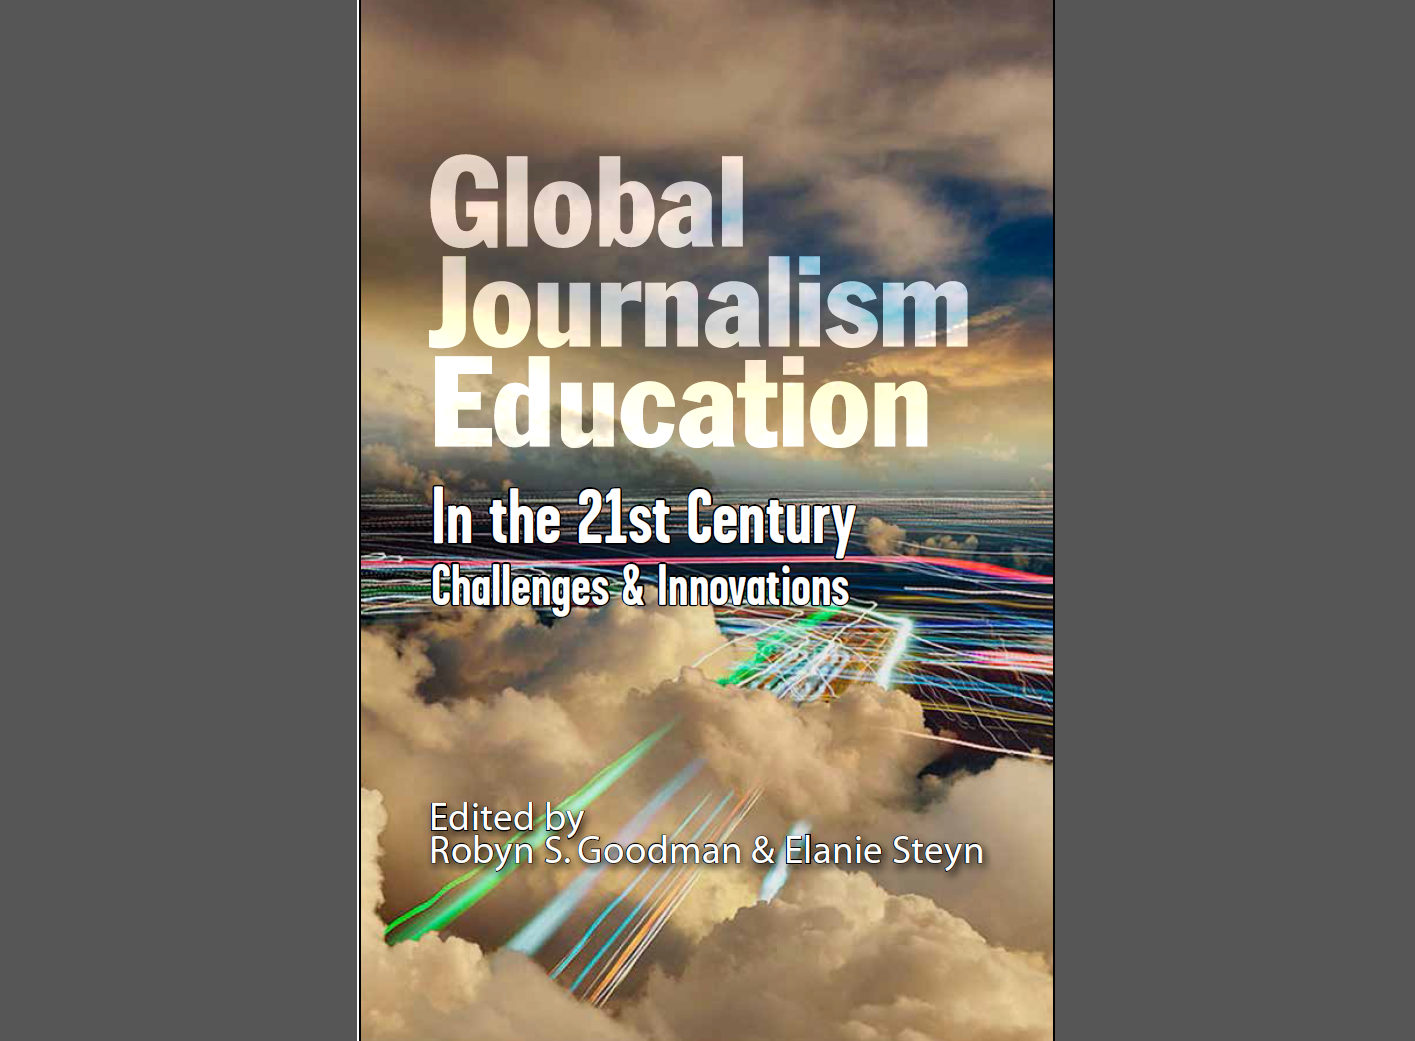 Global Journalism Education in the 21st Century: Challenges and Innovations – 'an invaluable resource'